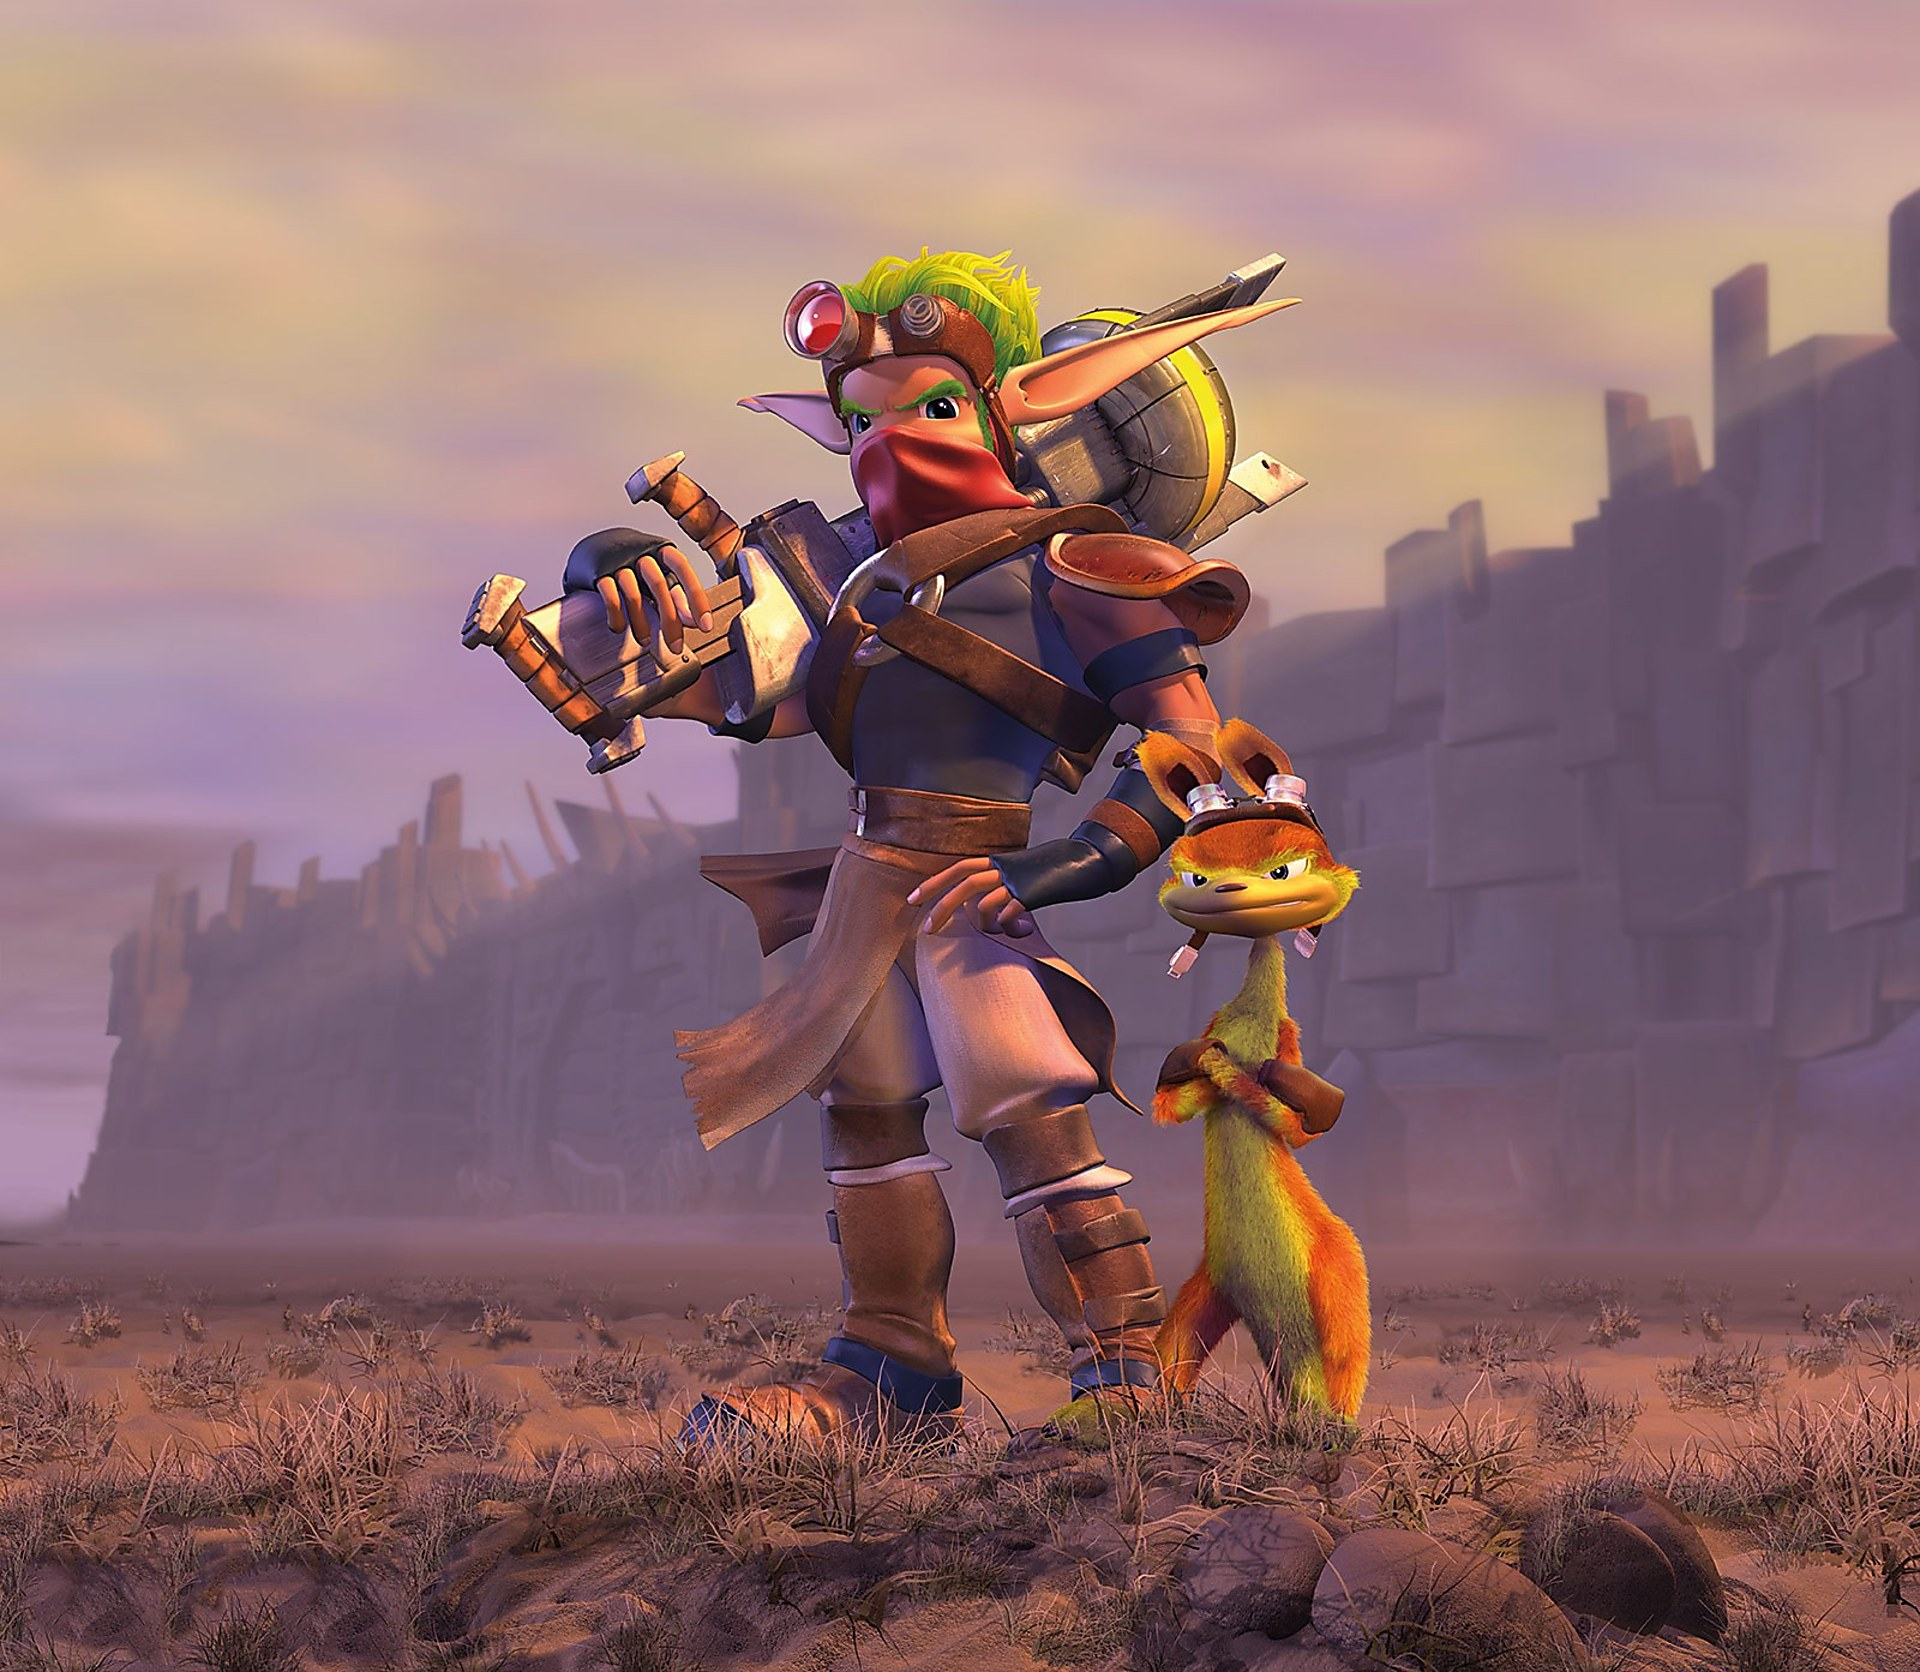 Artwork Jak Daxter Jak Daxter Naughty Dog